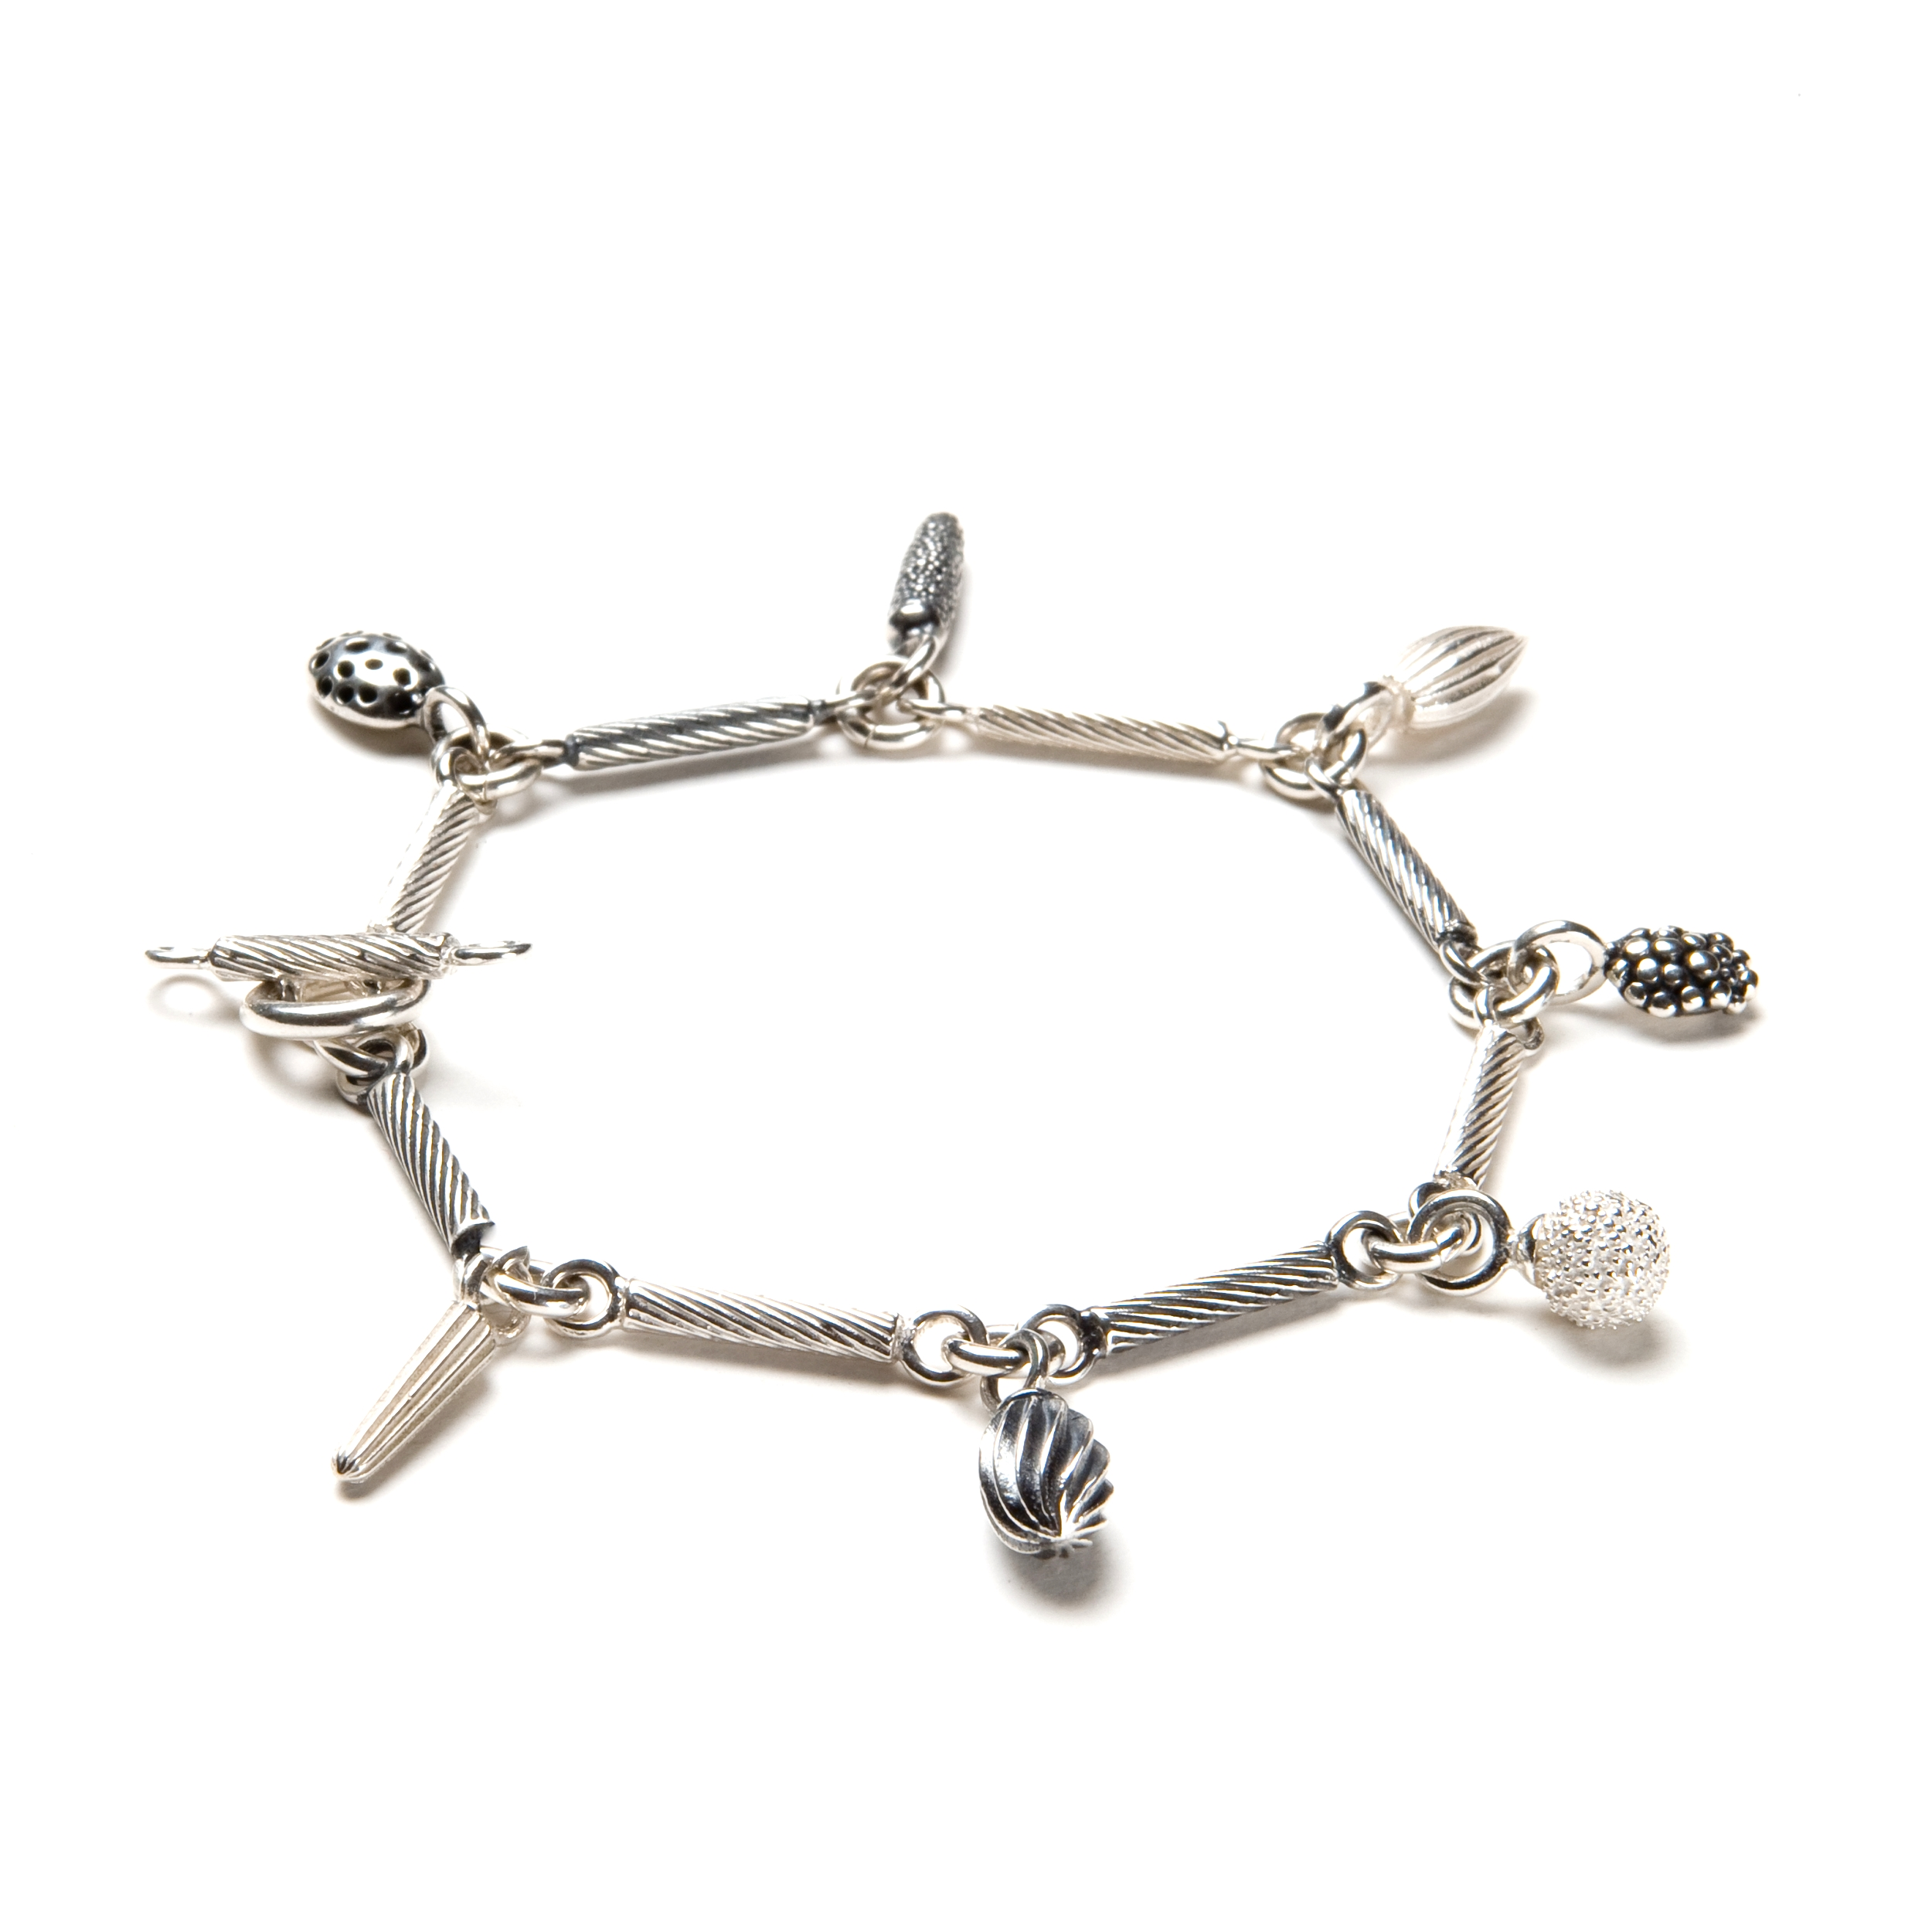 Catherine Hills Jewellery.Striped Link Bracelet with 7 Charms - Alternate Silver and Oxidised Silver Twisted Links with Silver and Oxidised Silver Charms  .jpg